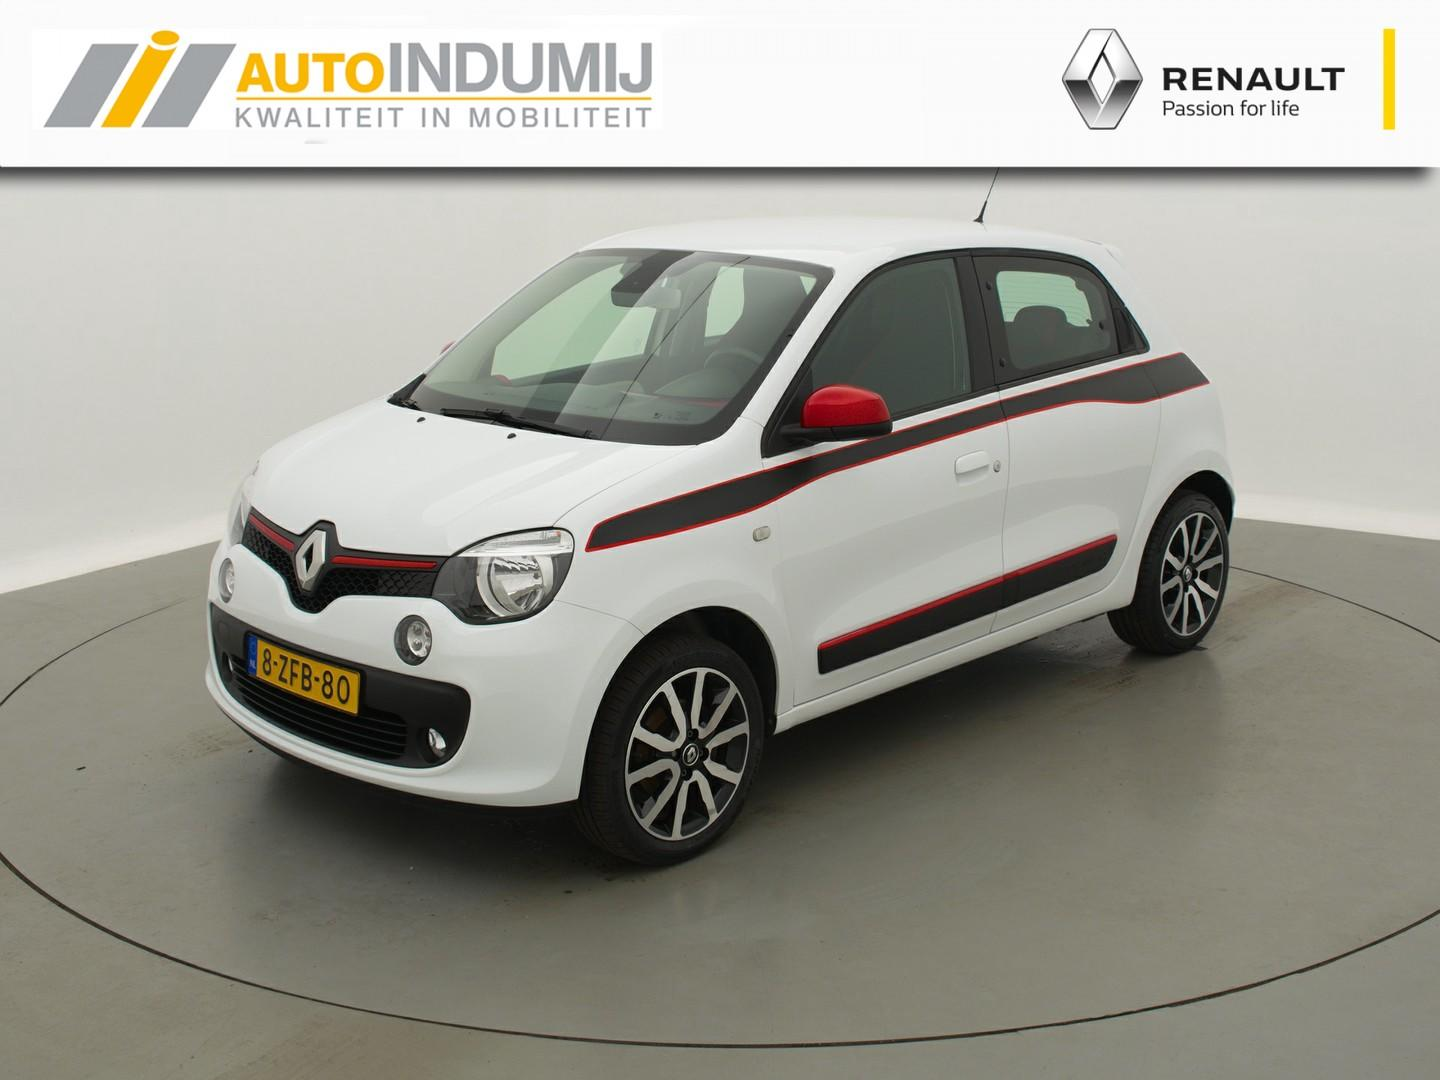 Renault Twingo 1.0 sce dynamique / climate control / pack comfort / pack look ex+int rouge / pack sound